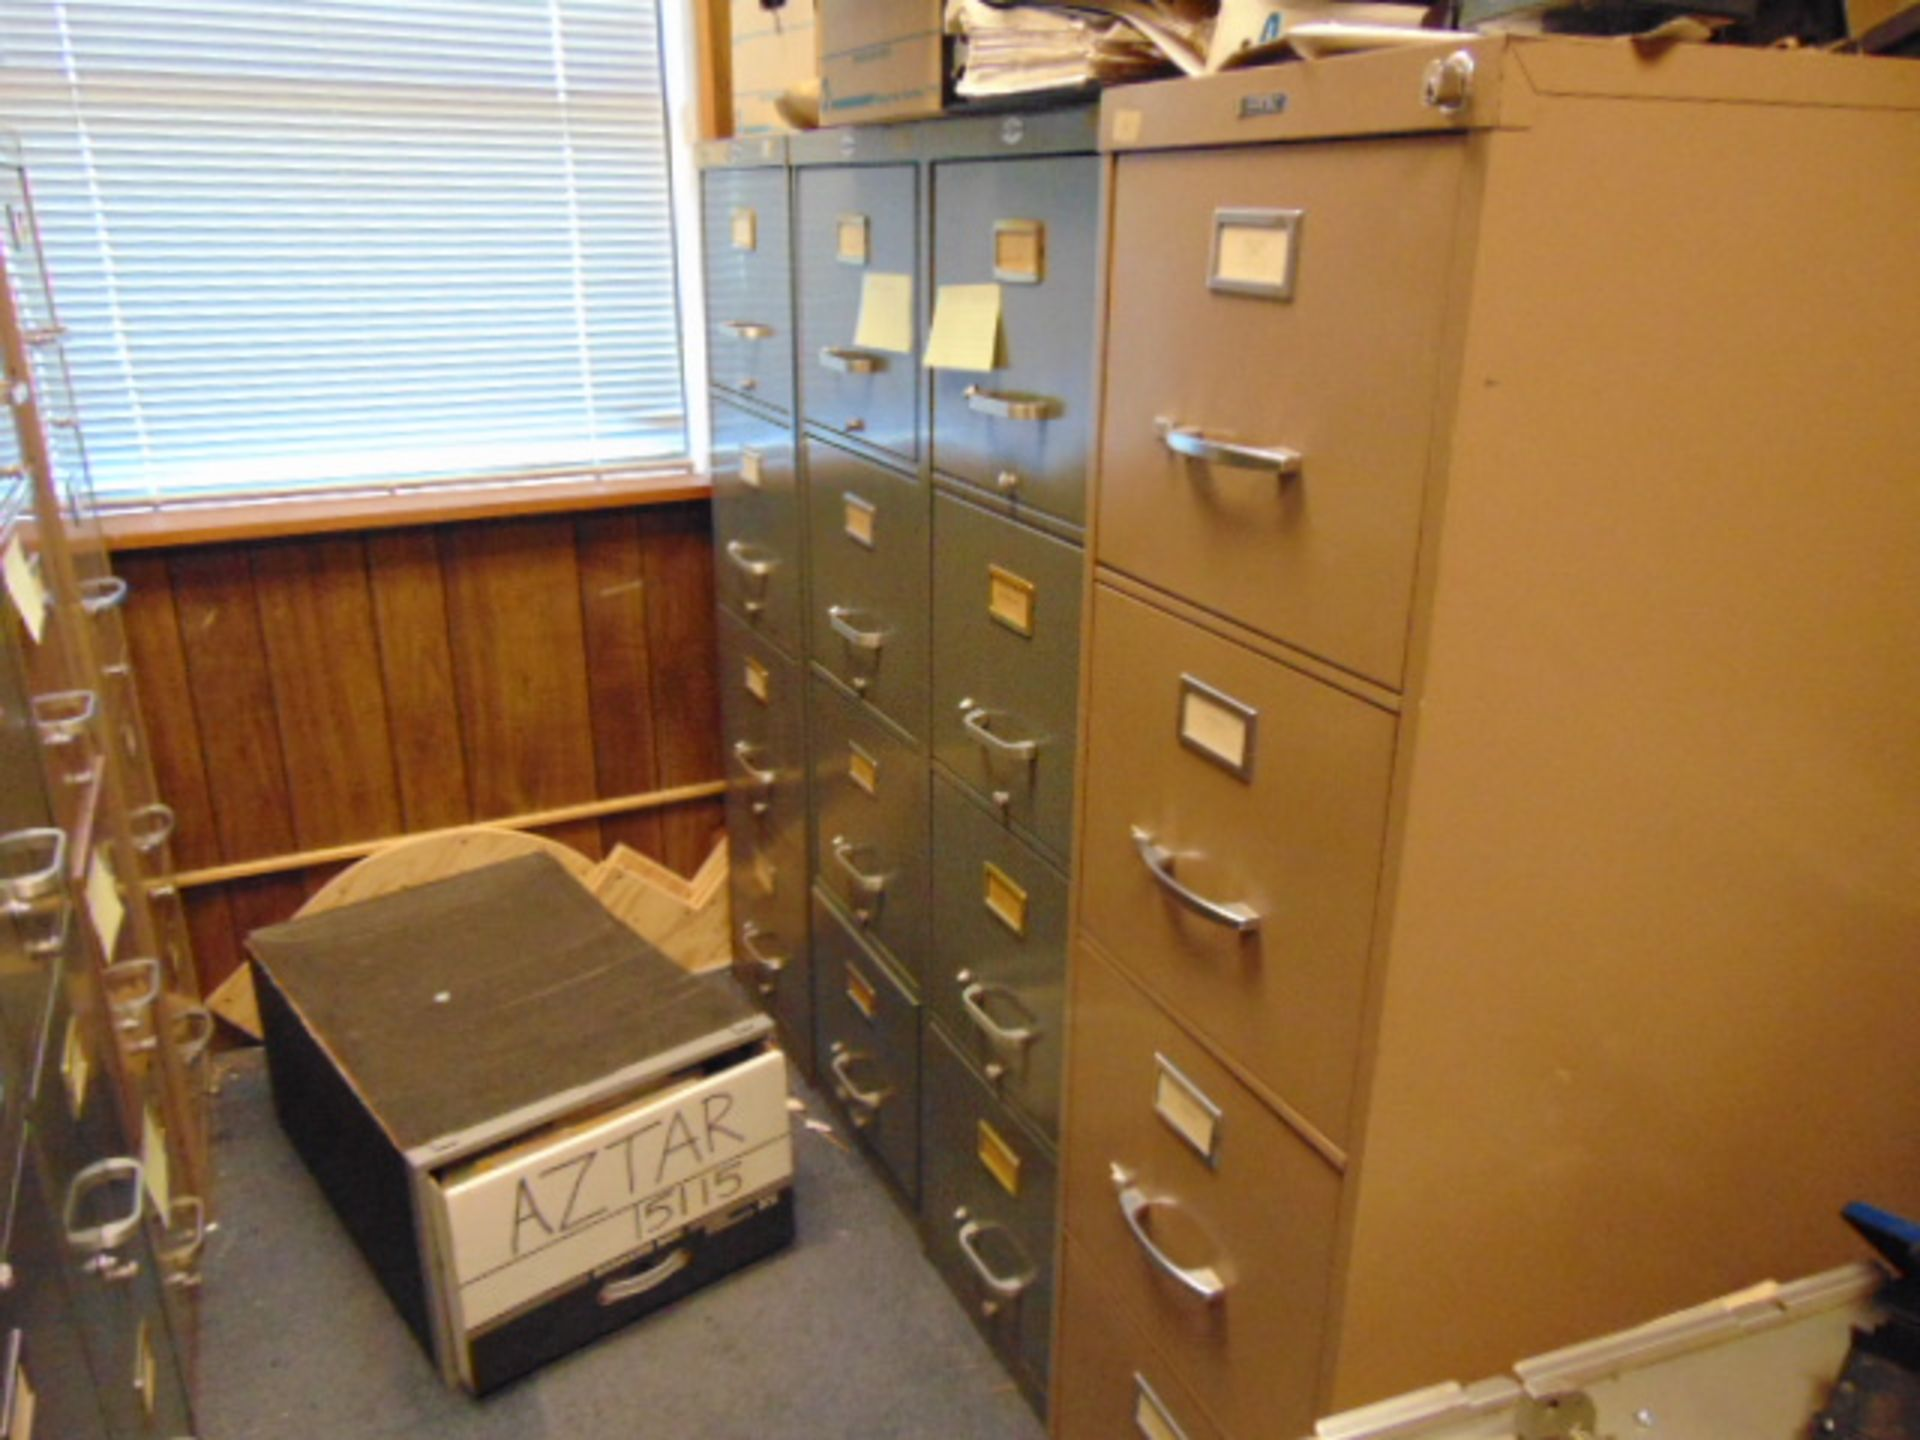 Lot 670 - LOT CONSISTING OF: desk, credenza, file cabinets (in two rooms located upstairs)